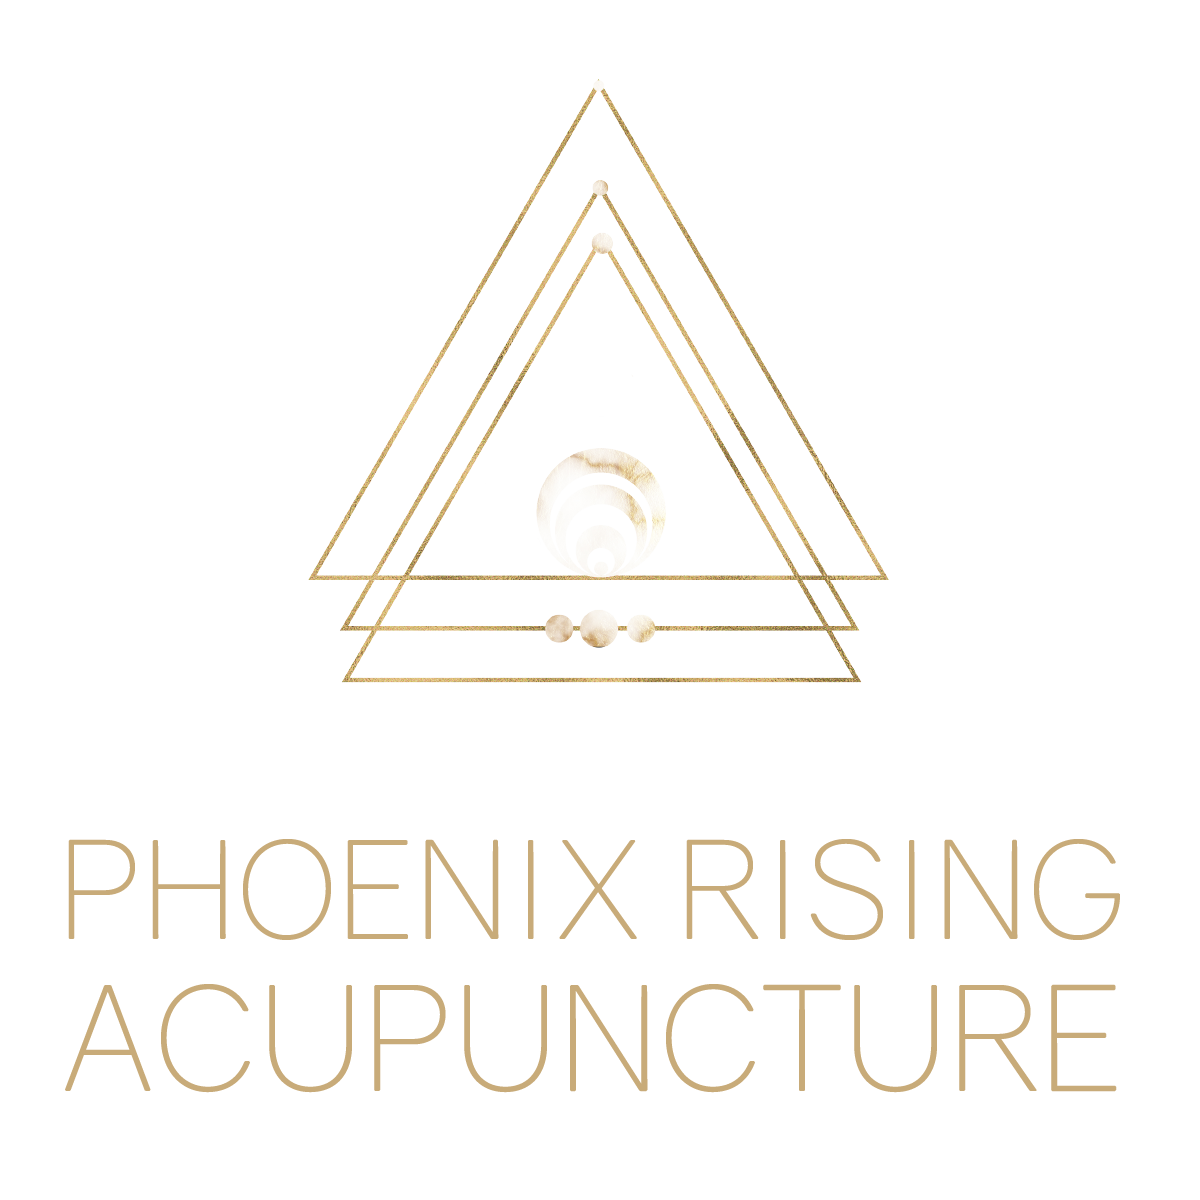 Phoenix Rising Acupuncture